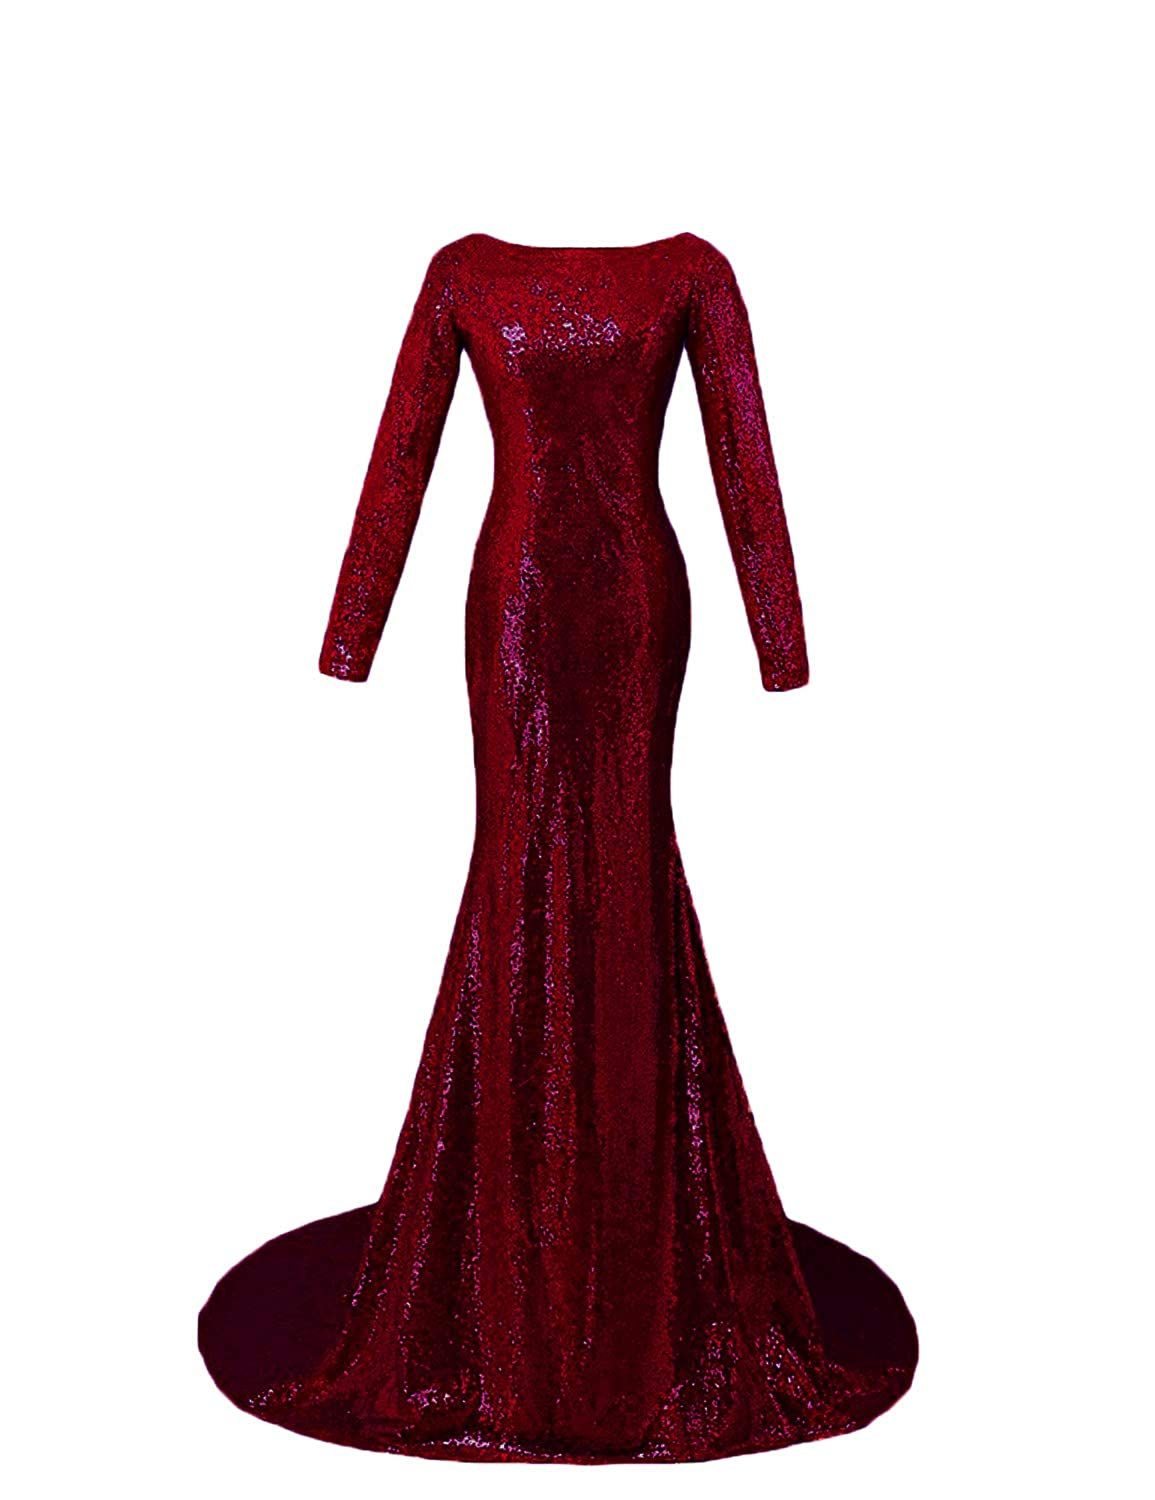 Dark Burgundy CIRCLEWLD Backless Sequins Long Sleeves Formal Evening Dresses Train Elegant Prom Gala Gown E185